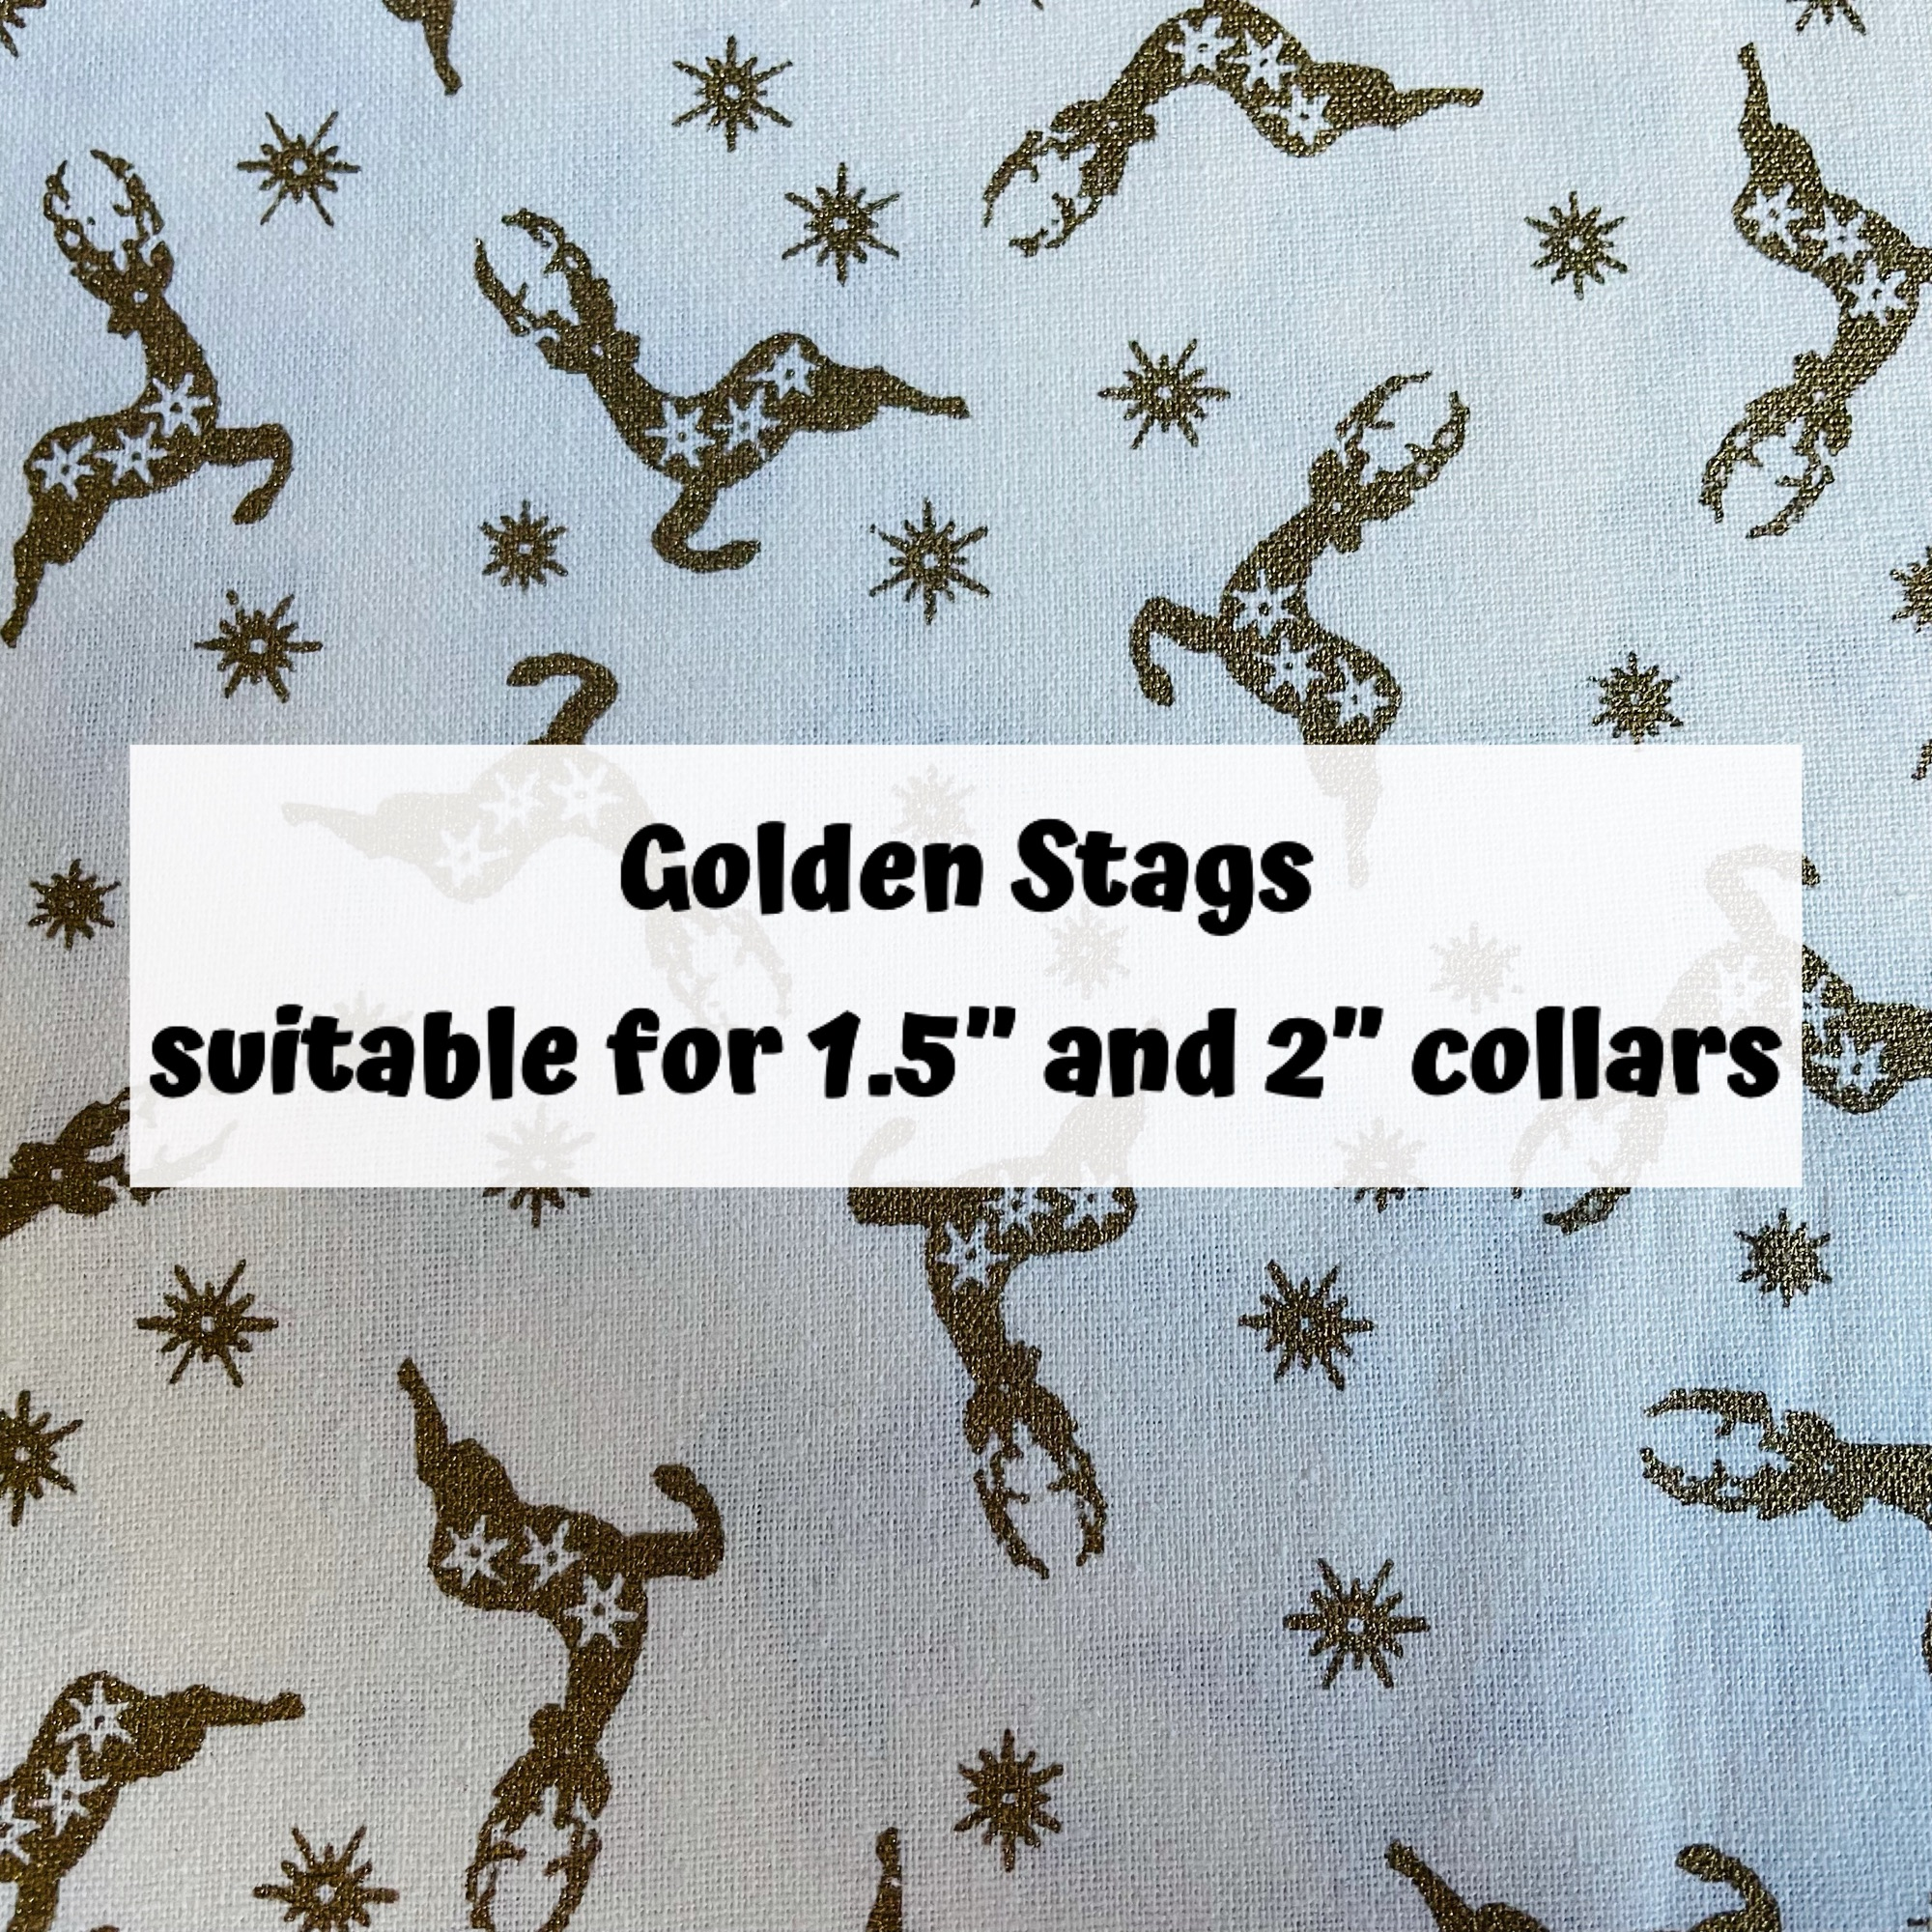 Golden Stags